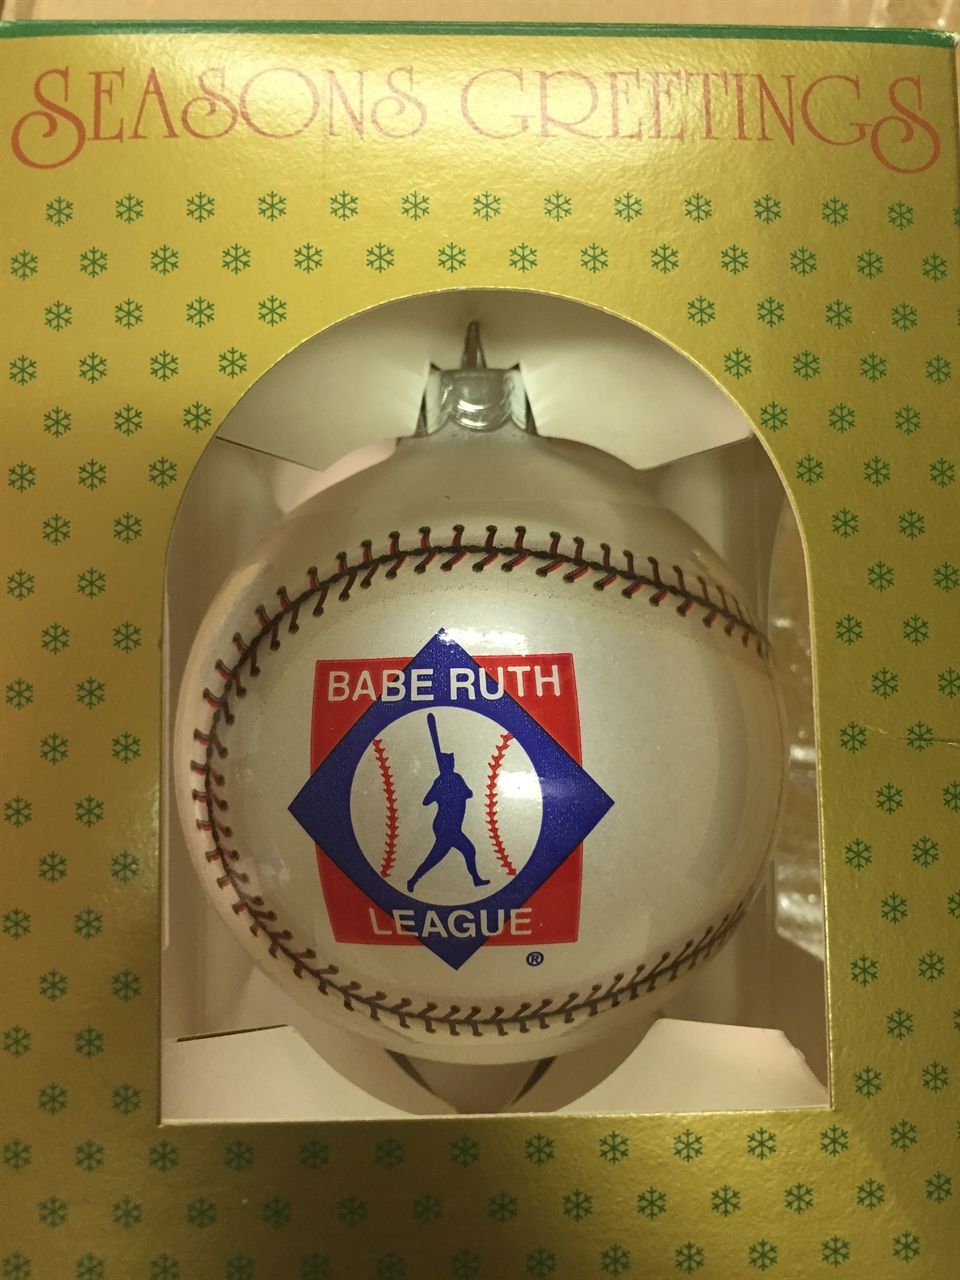 Babe Ruth League Online Store Wall Graphic